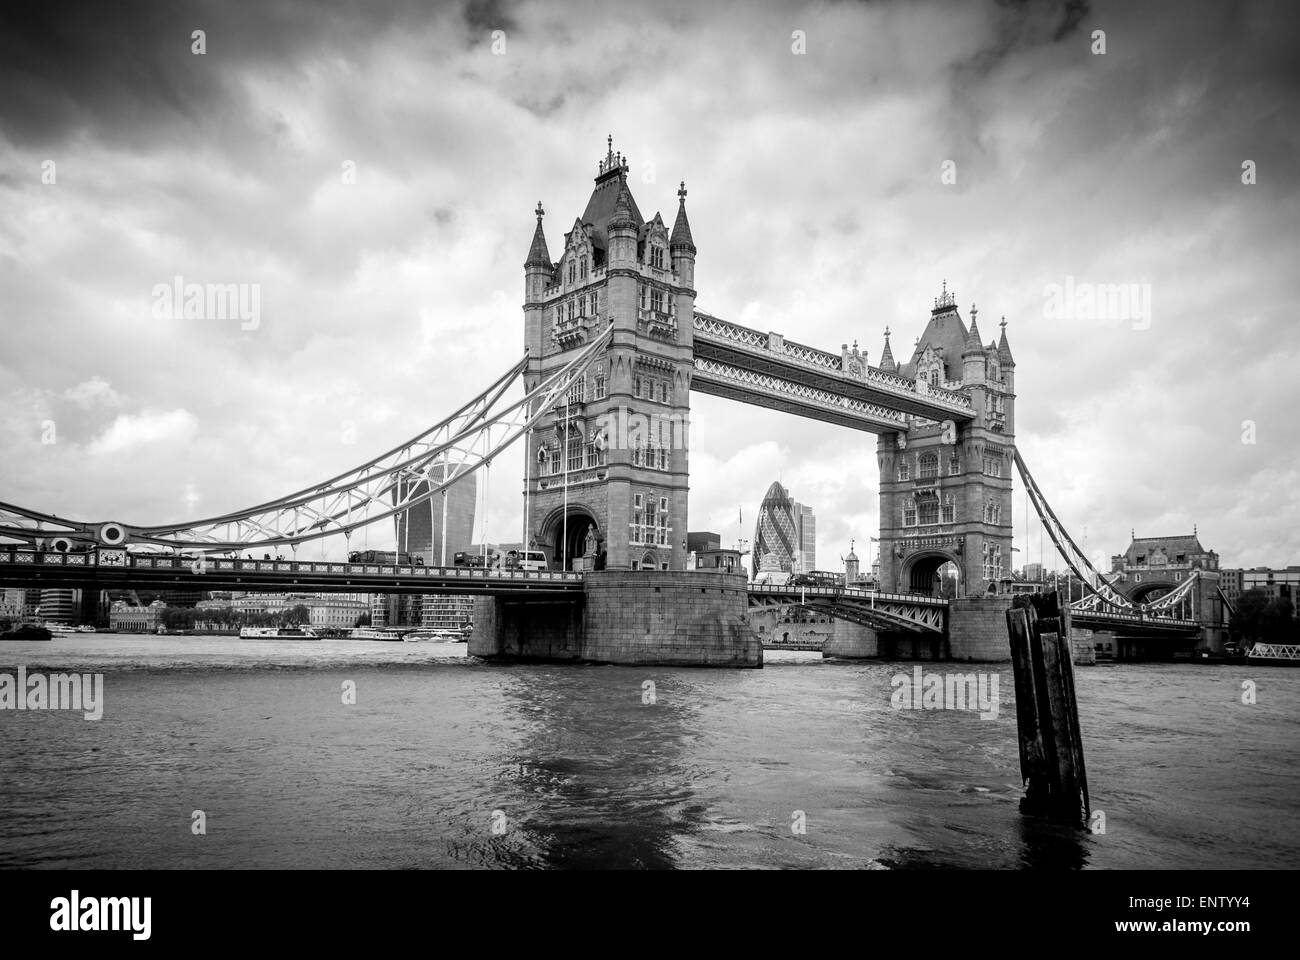 Tower Bridge, London, viewed from south side of river Thames Stock Photo